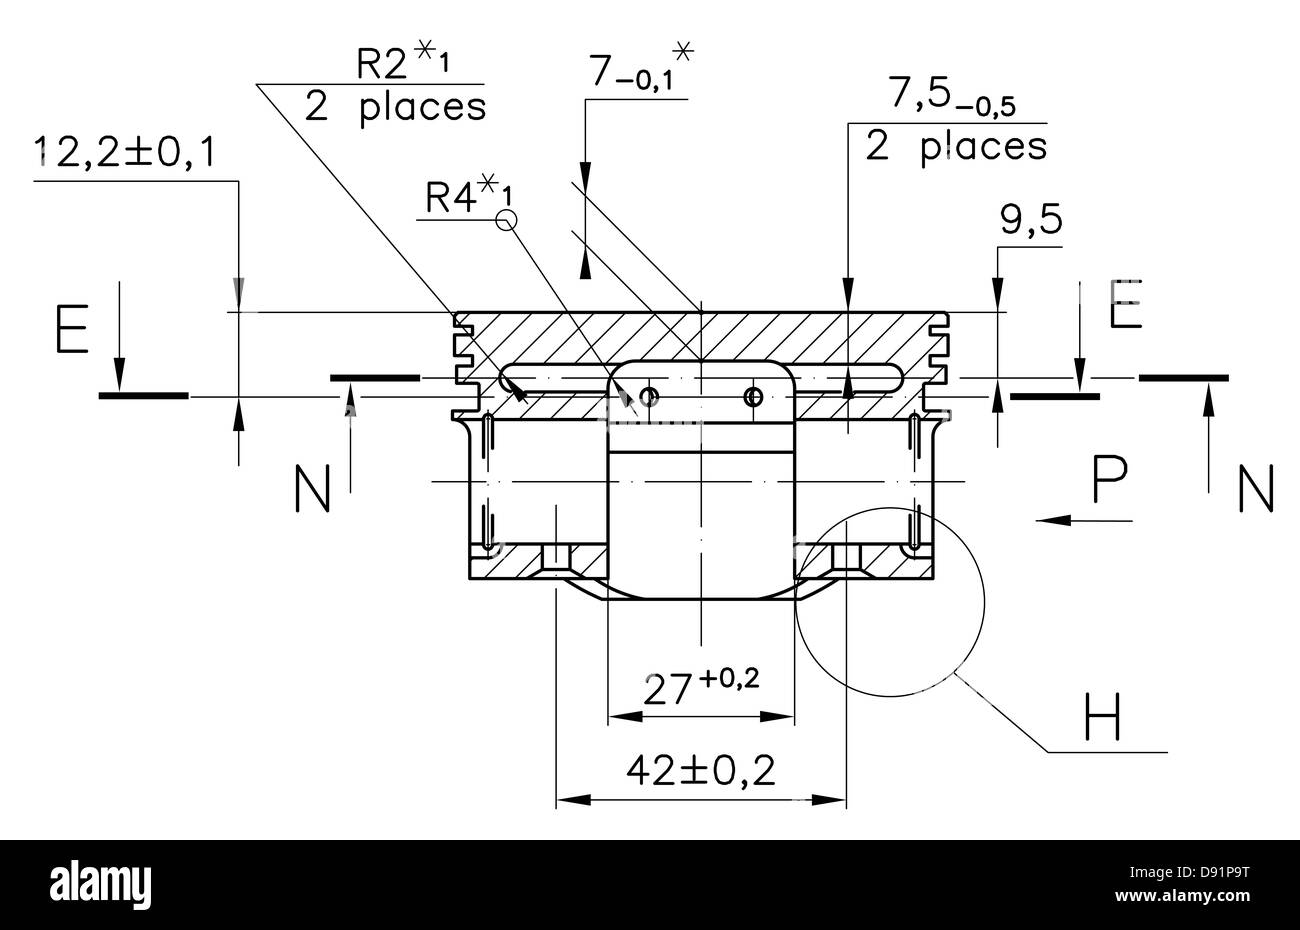 Internal Combustion Engine Cut Out Stock Images Pictures Alamy Vw Piston Diagram Design Drawings Of Nonexistent Clipping Path Image